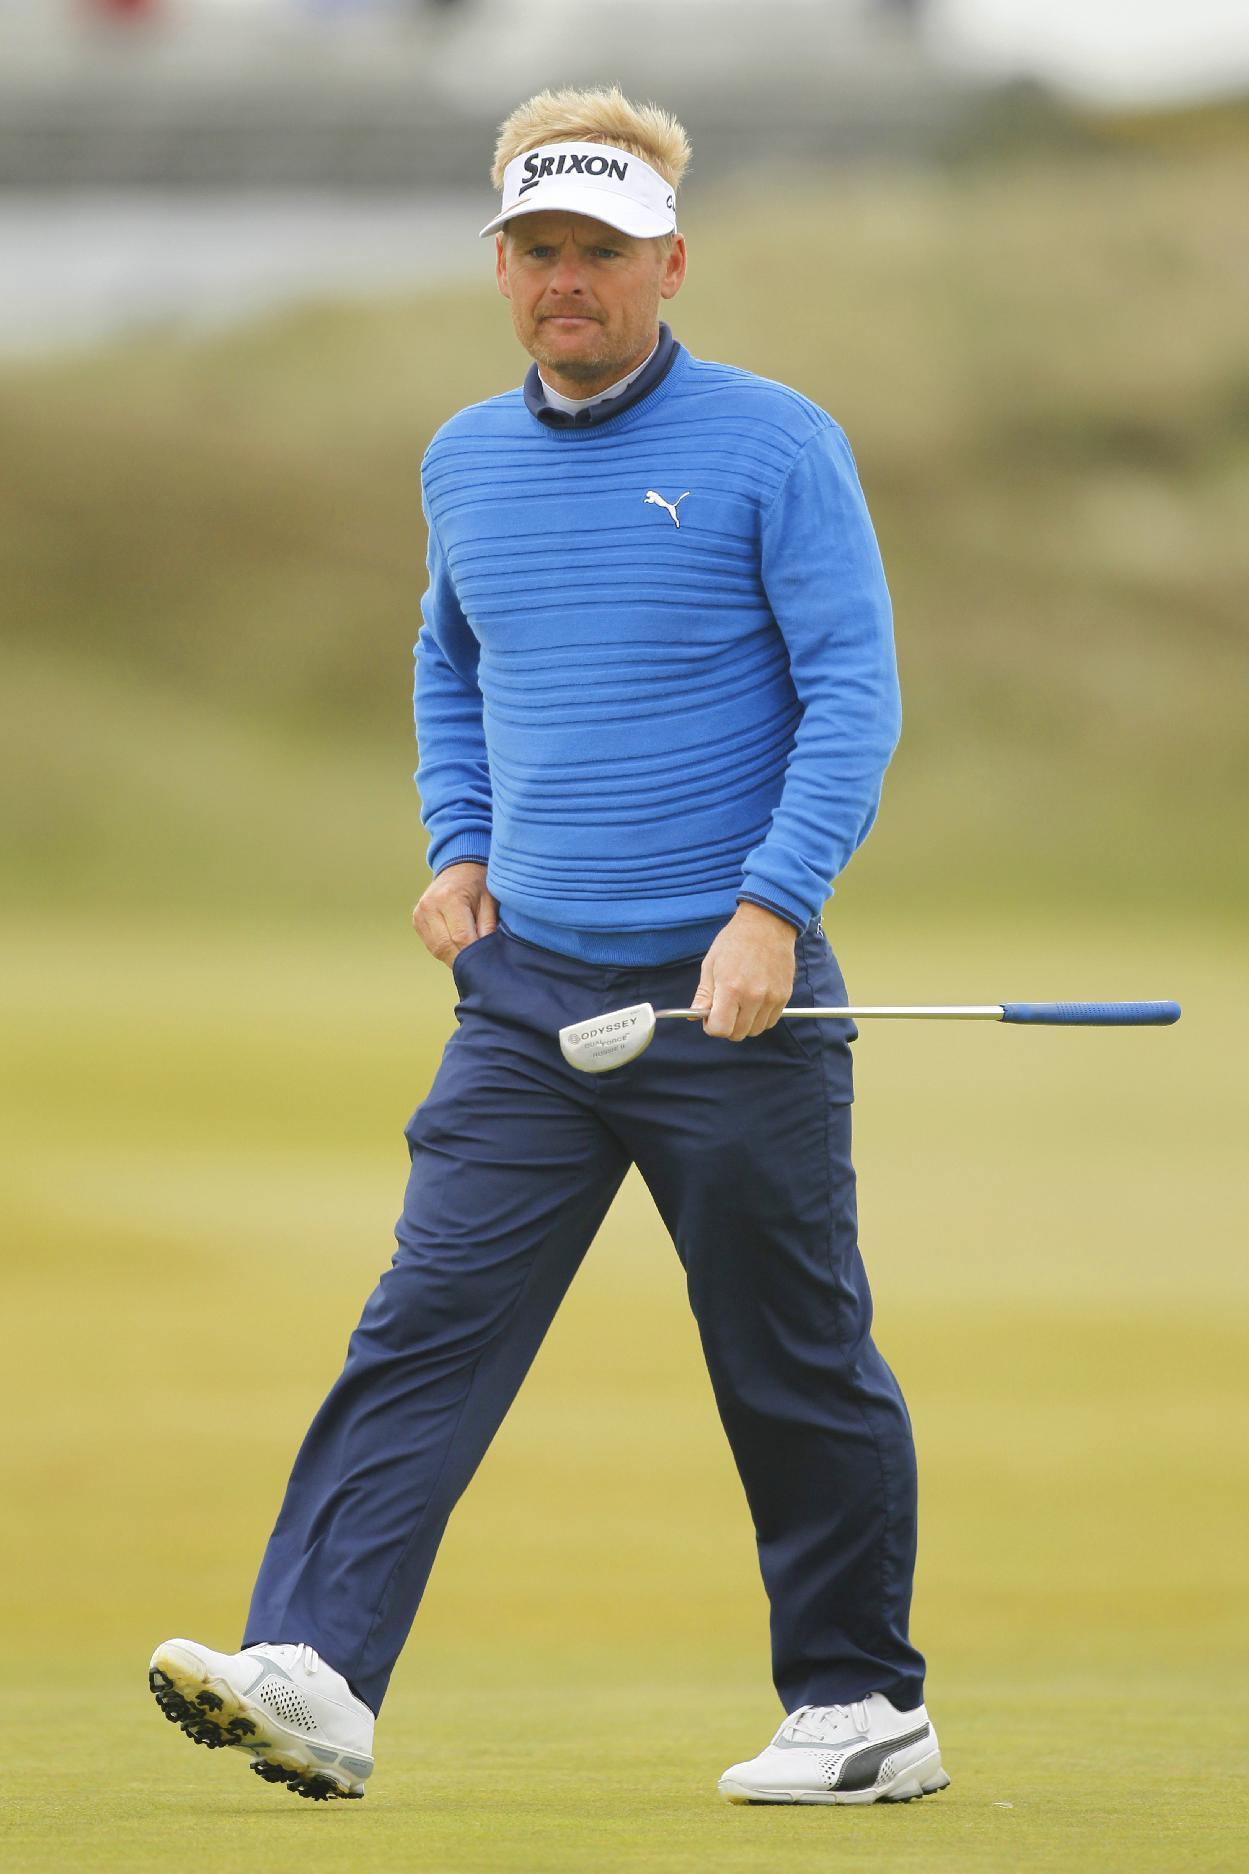 Denmark's Kjeldsen shoots 67, takes 2-stroke Irish Open lead